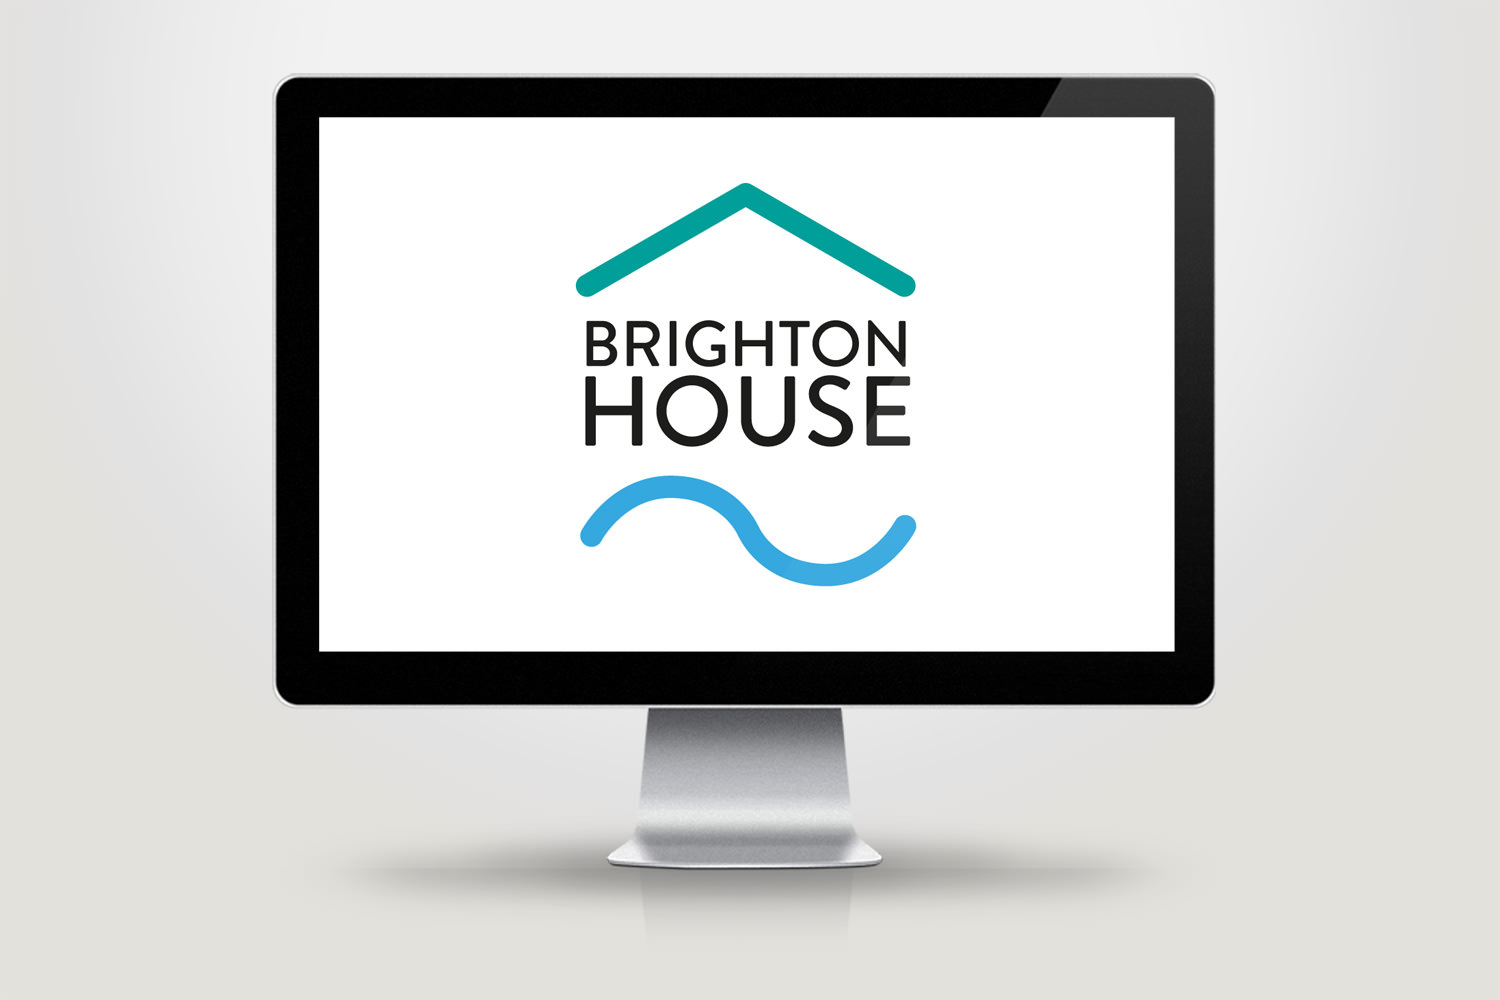 An iMac with the final version of the Brighton House brand identity – Tribus Creative, brand identity design for small business